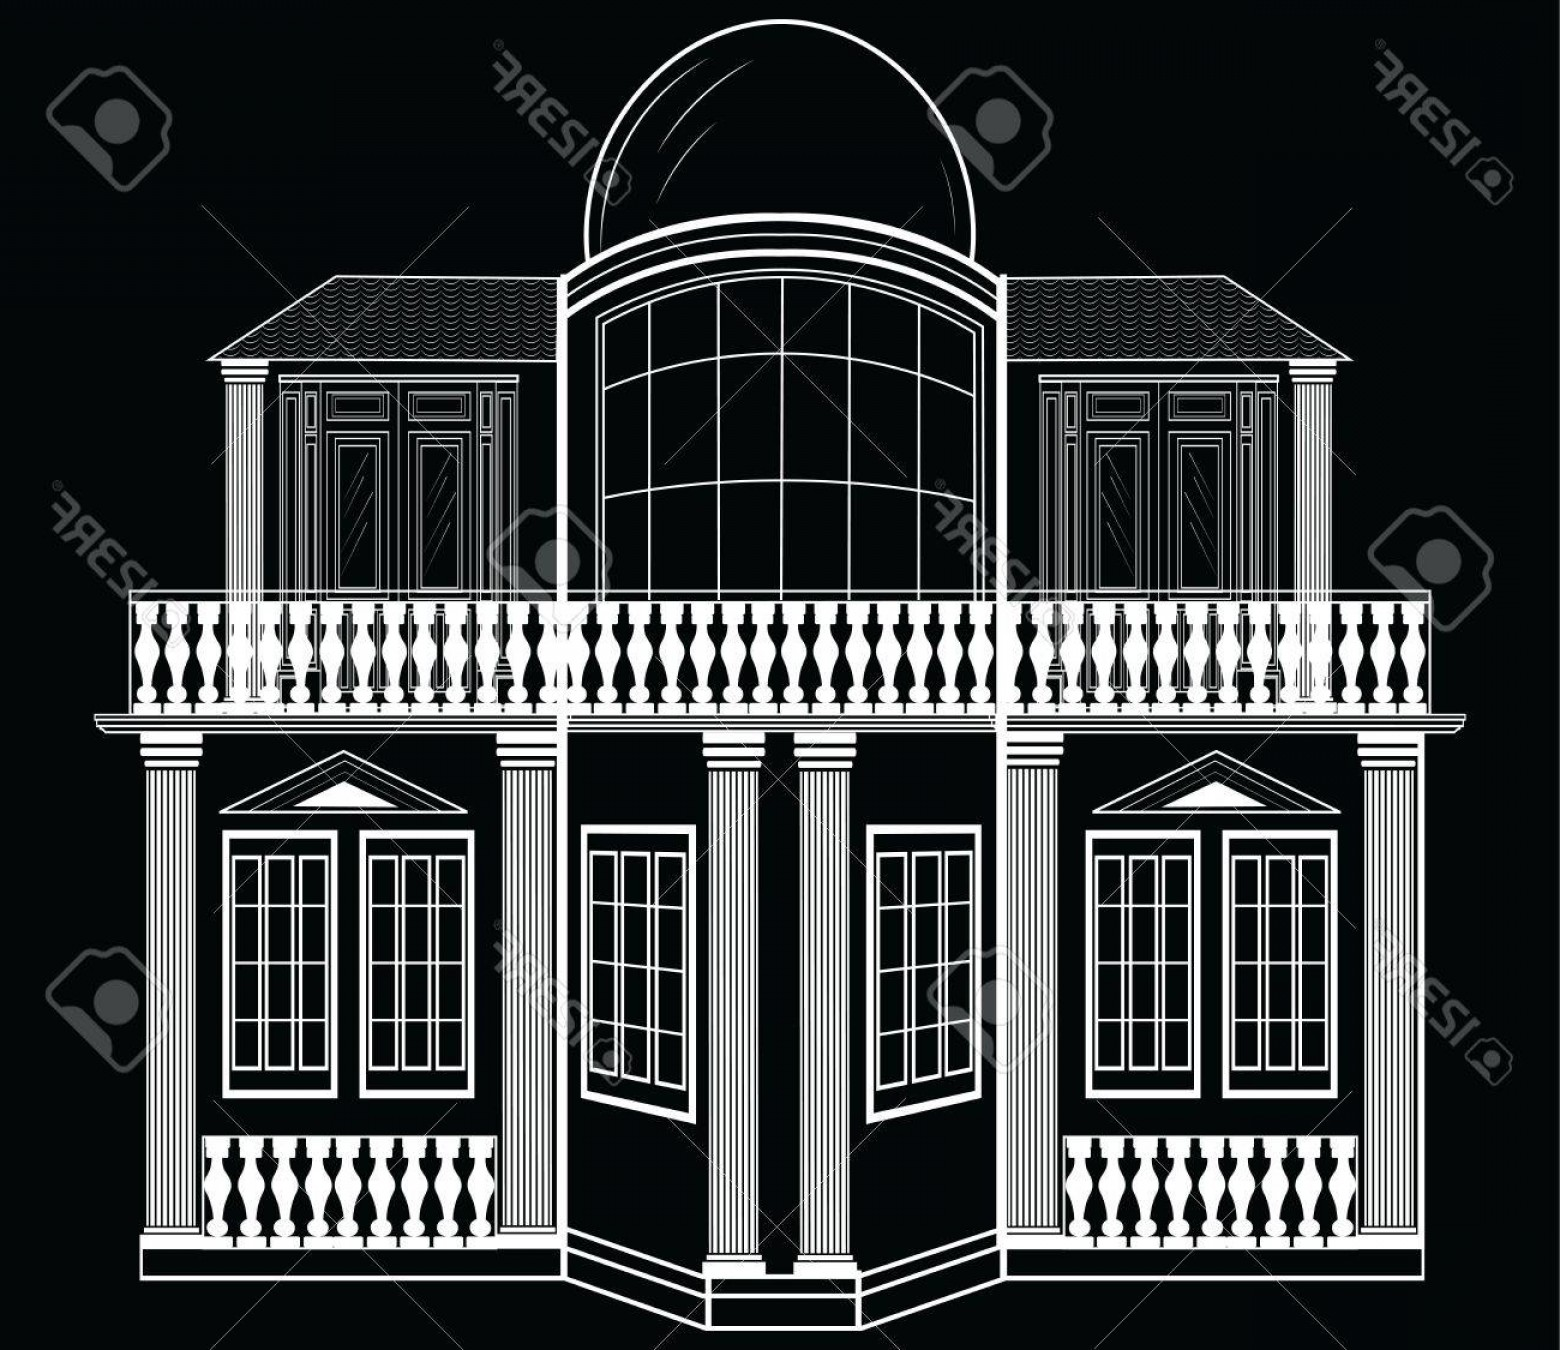 Residential Blueprint Vector Black: Photostock Vector Architectural Facade Vector Wire Frame Blueprint Drawing Of Classic Building Vector Architectural Te